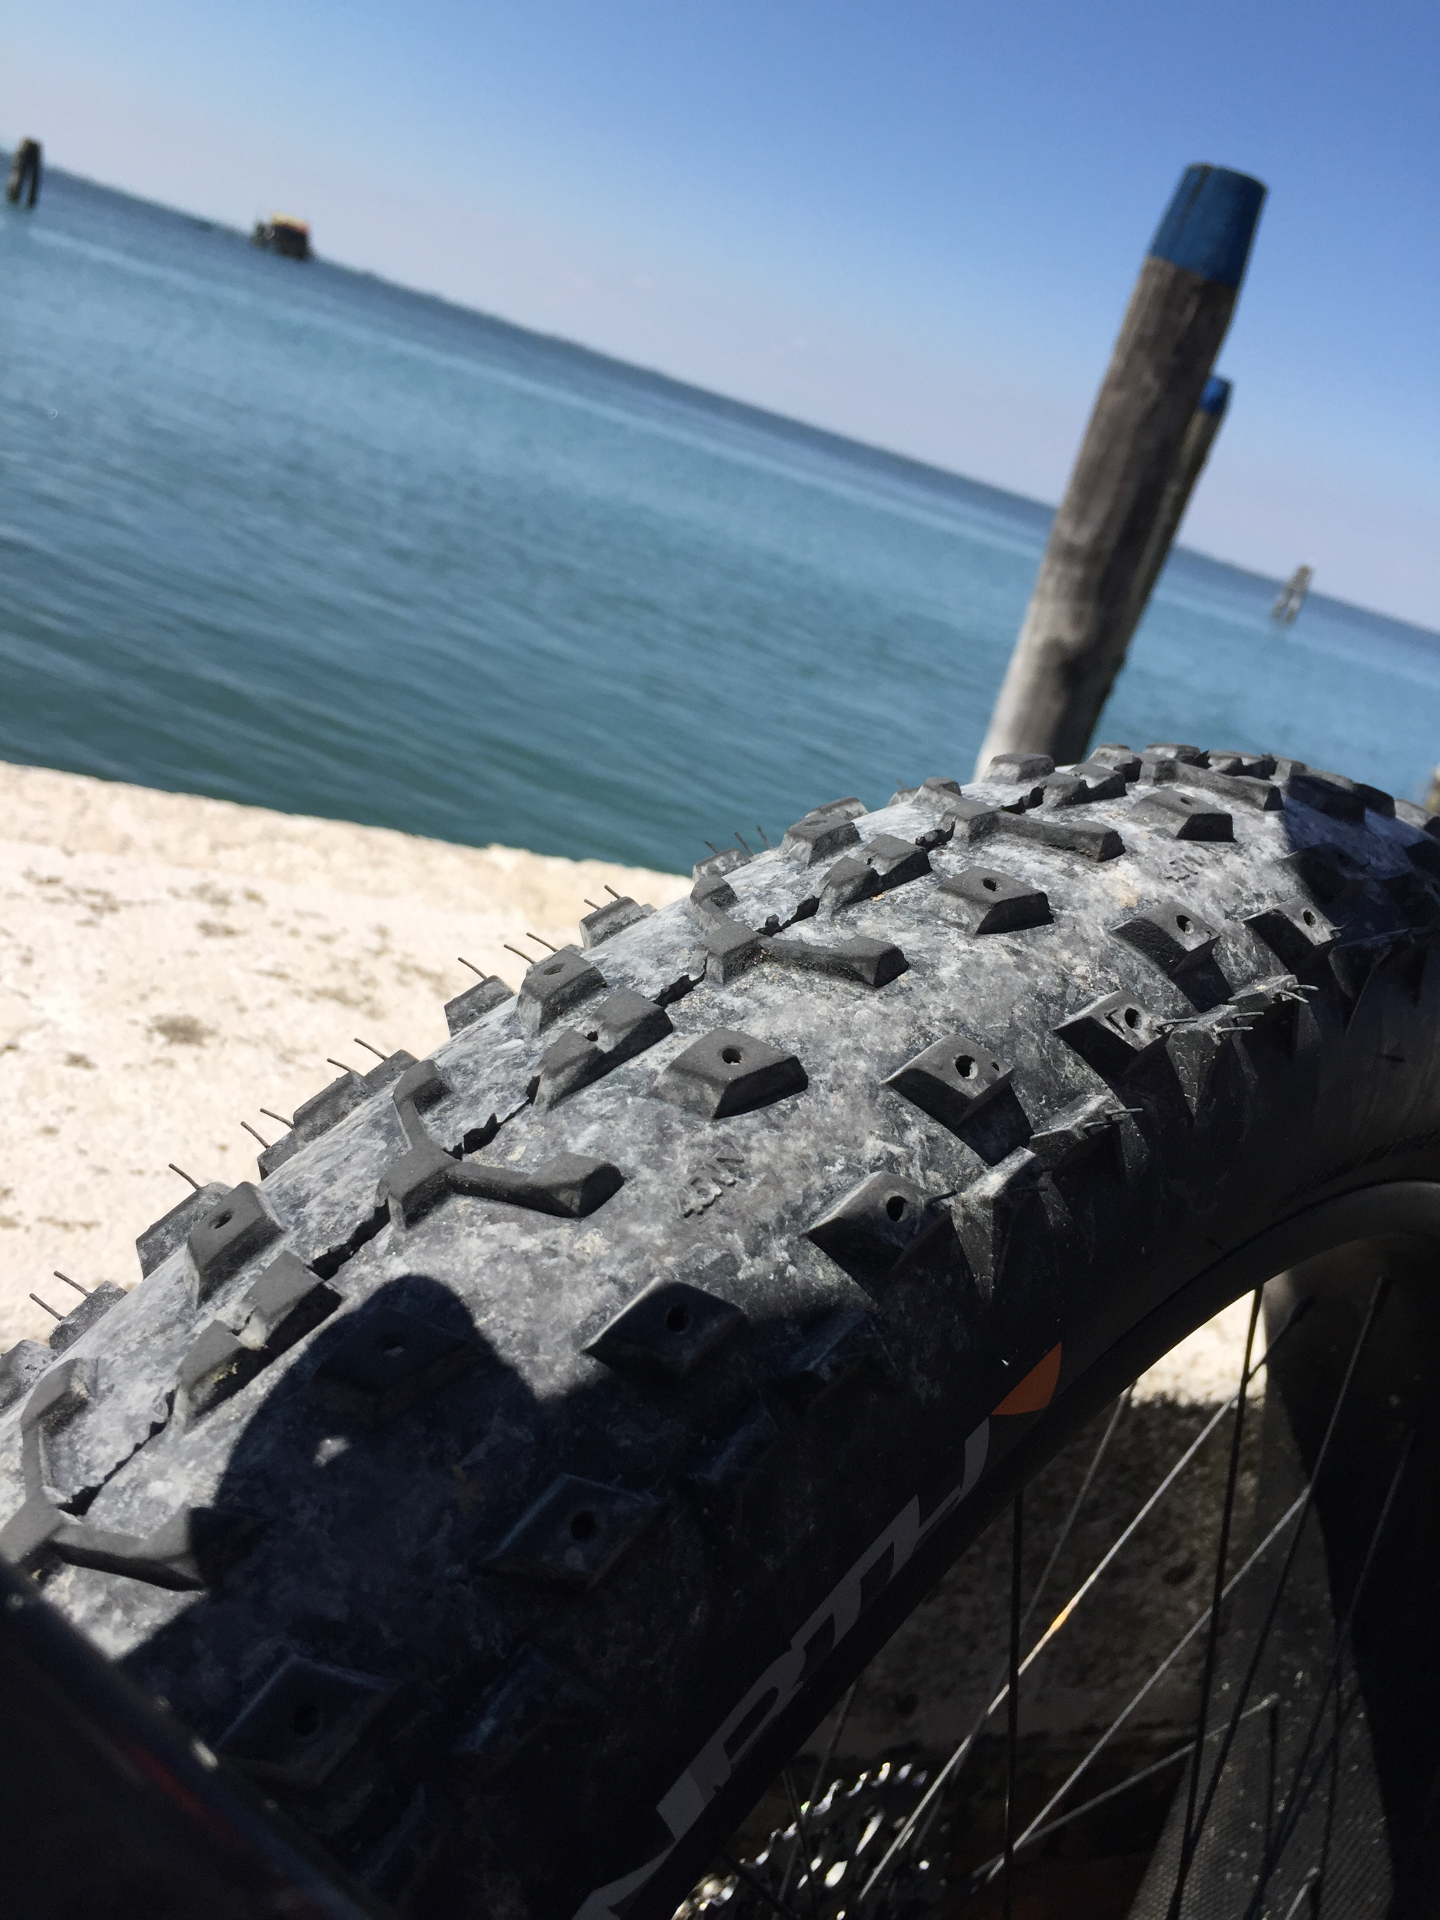 Fat bike passion...